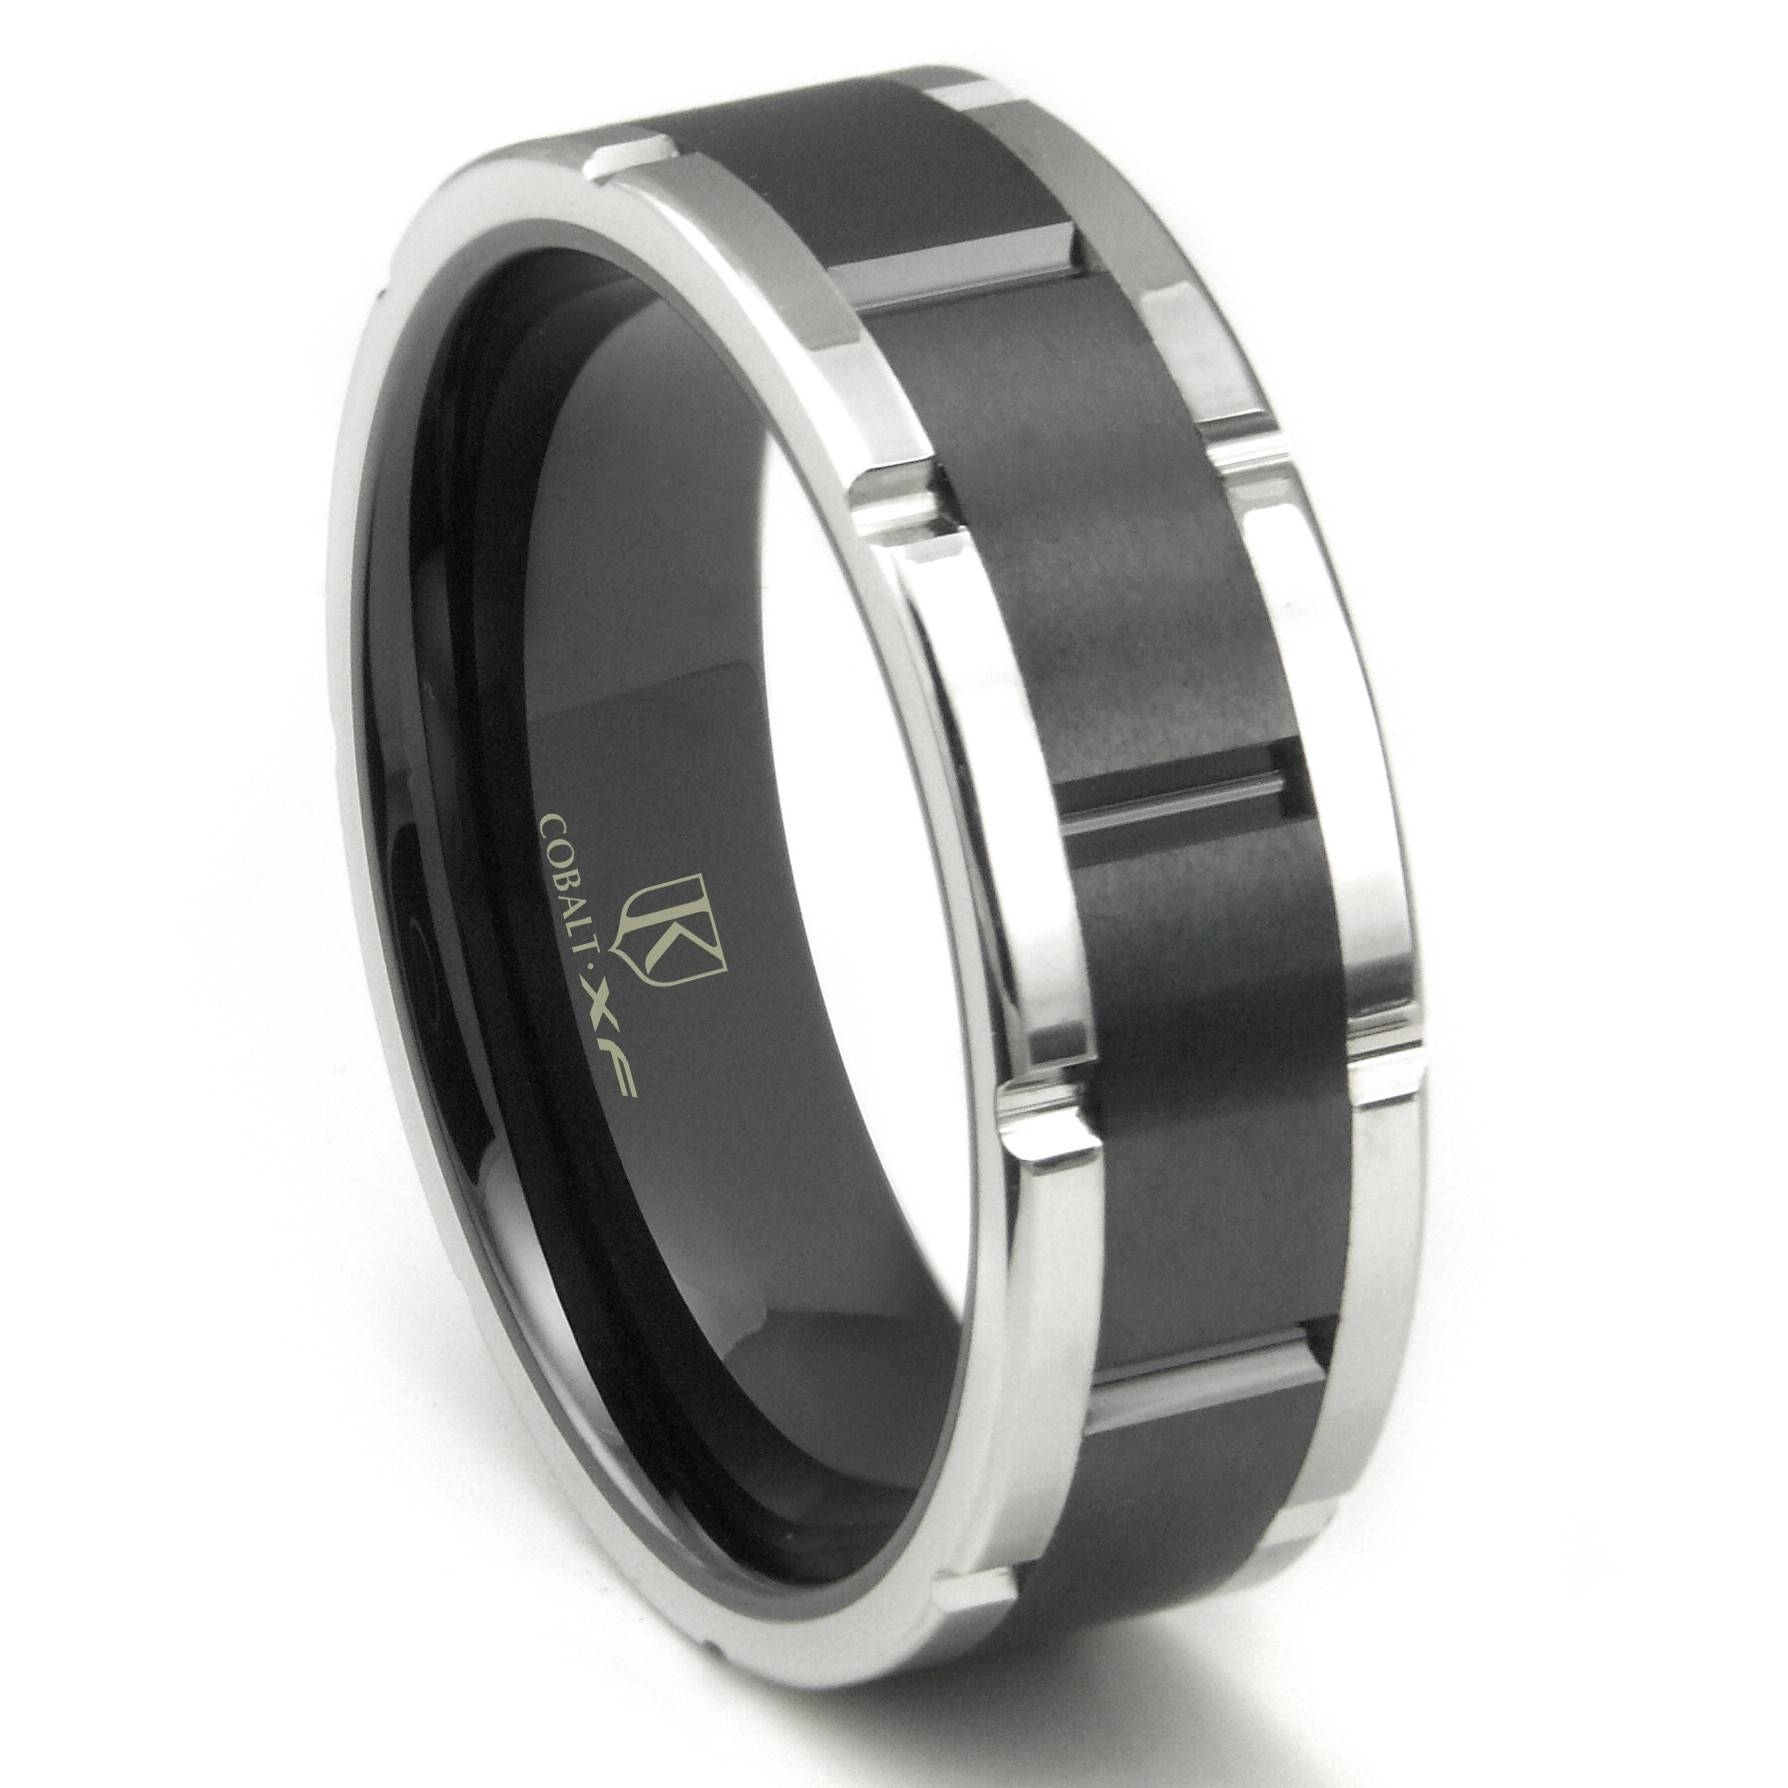 Photo Gallery of Mens Skull Wedding Bands Viewing 15 of 15 Photos